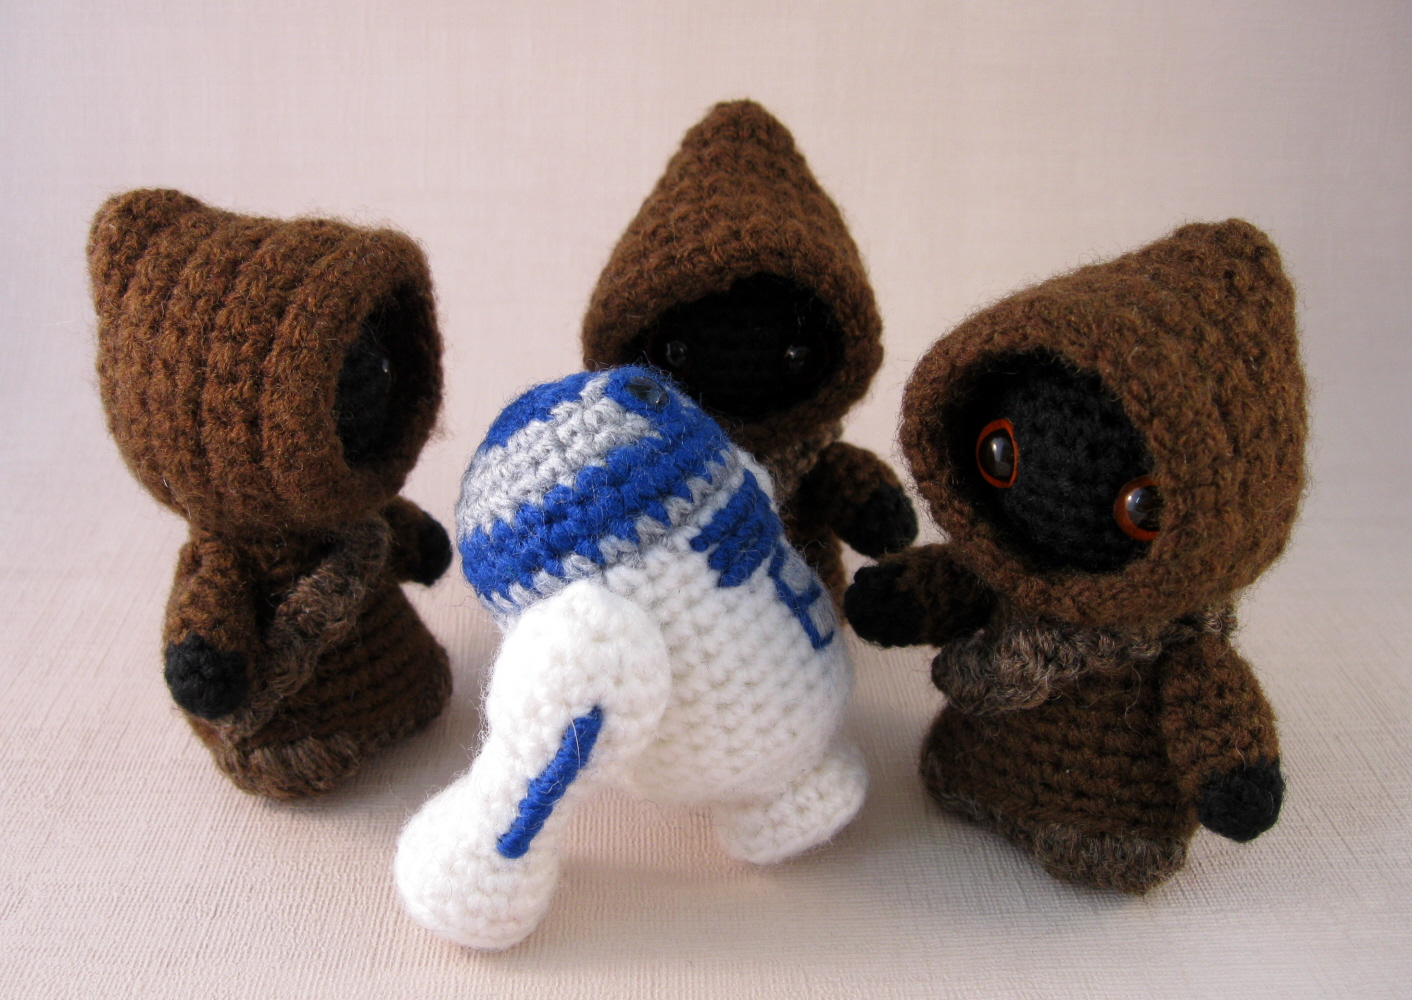 Crochet Patterns Star Wars : LucyRavenscar - Crochet Creatures: Utini! Its a new Jawa pattern!